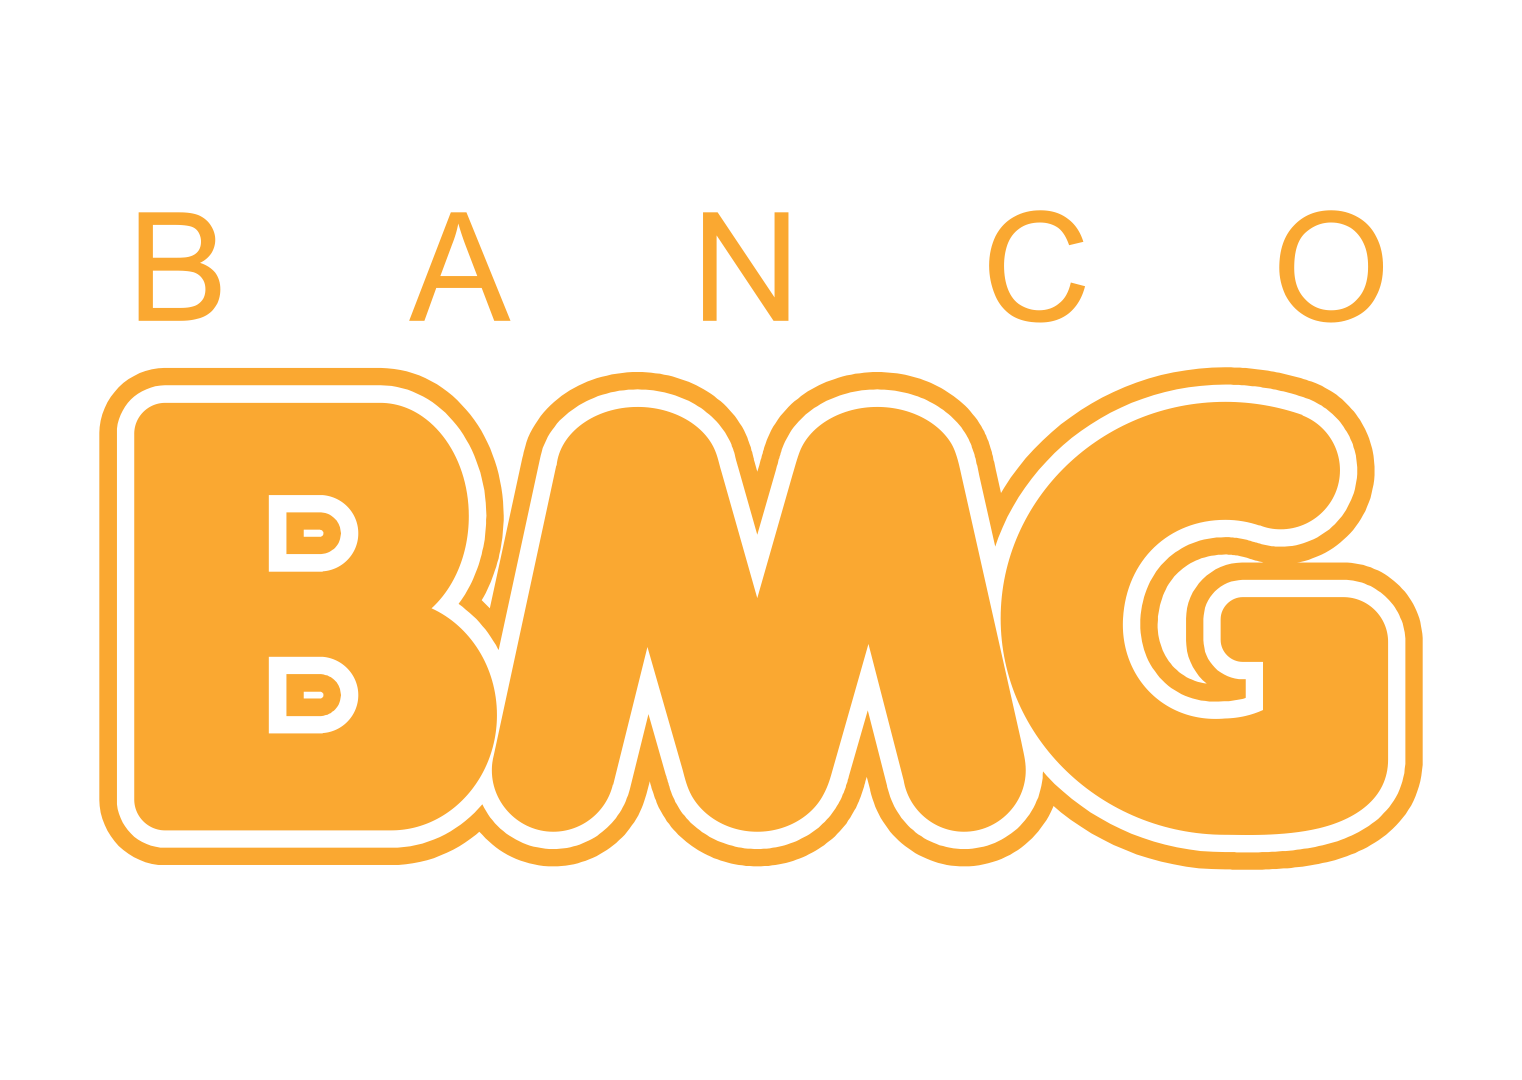 Banco BMG Logo Vector download free